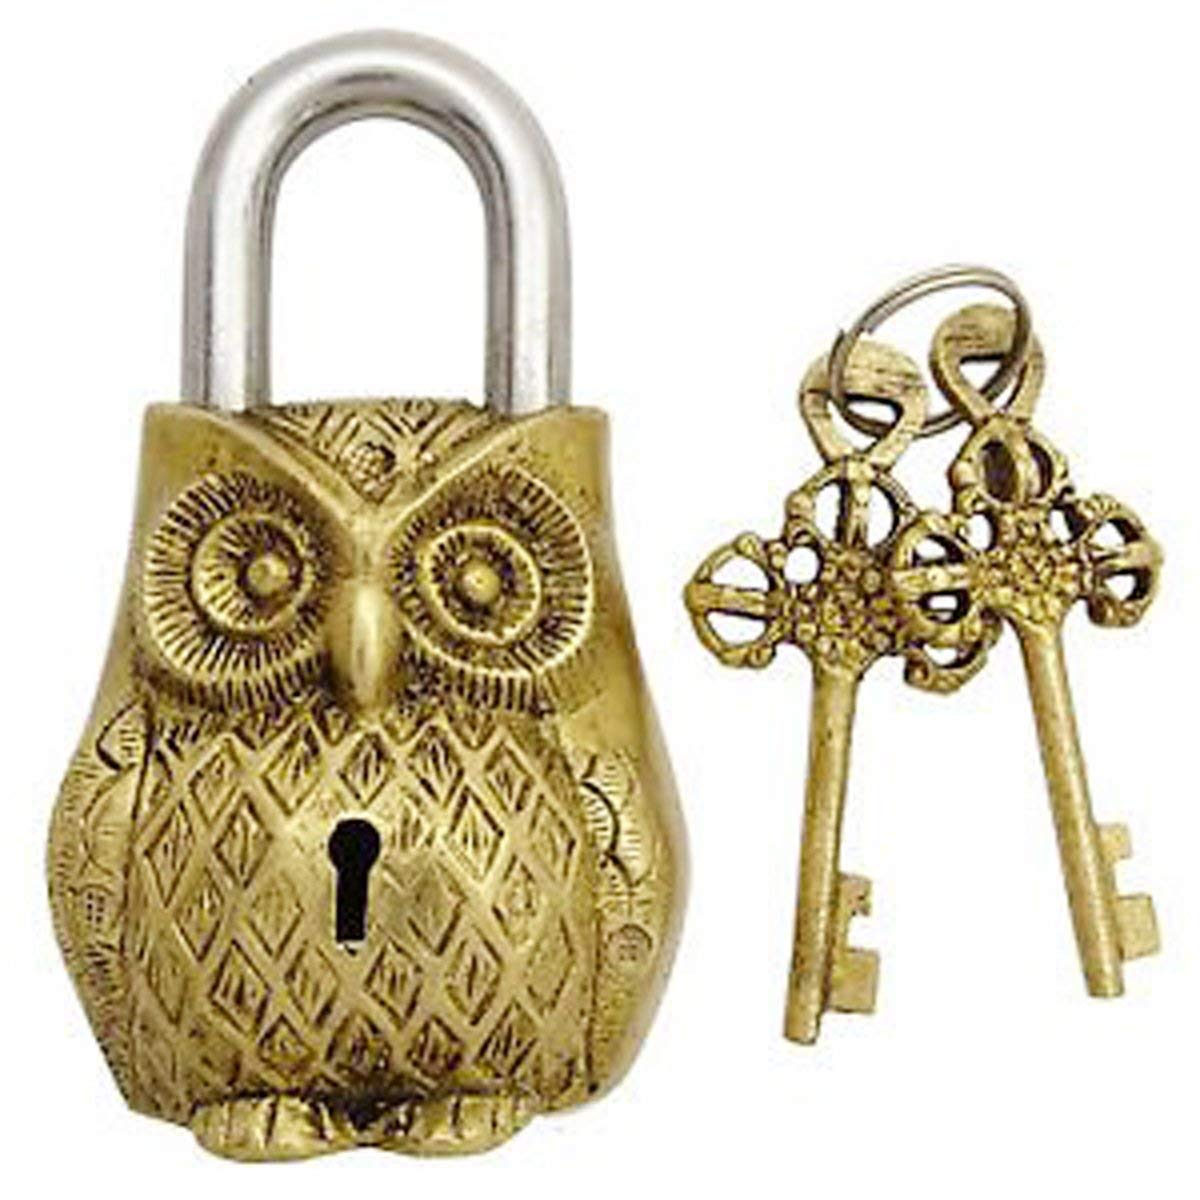 Buddha4all Beautifully Ornate Padlock Functional Brass Beautiful Padlocks with Two Keys Collectible Locks (Owl-Antique)